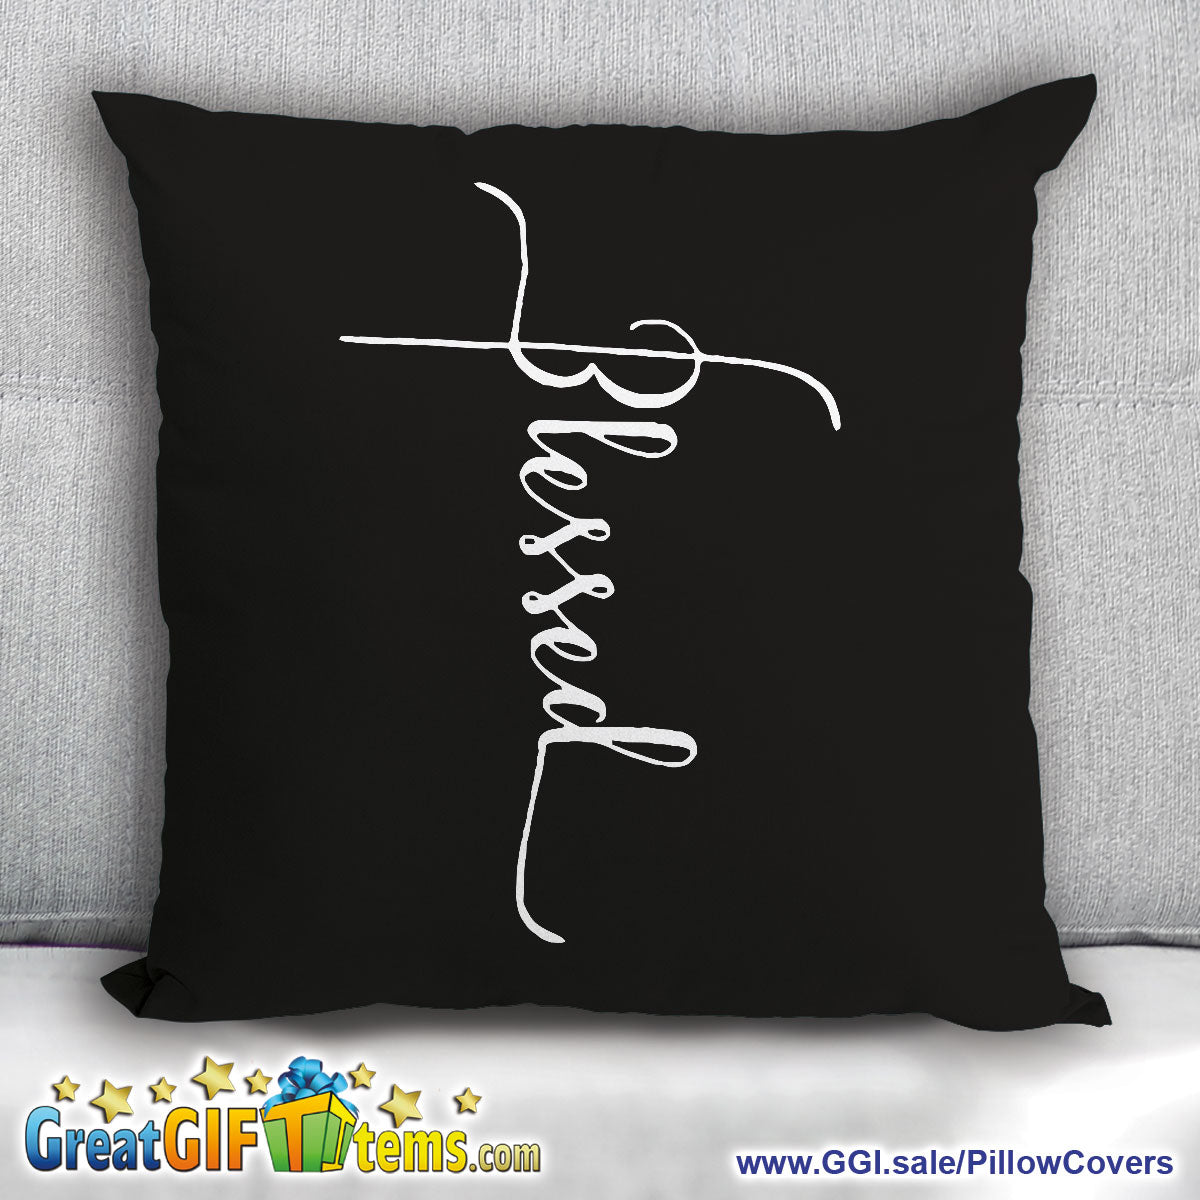 Blessed With The Cross Throw Pillow Cover